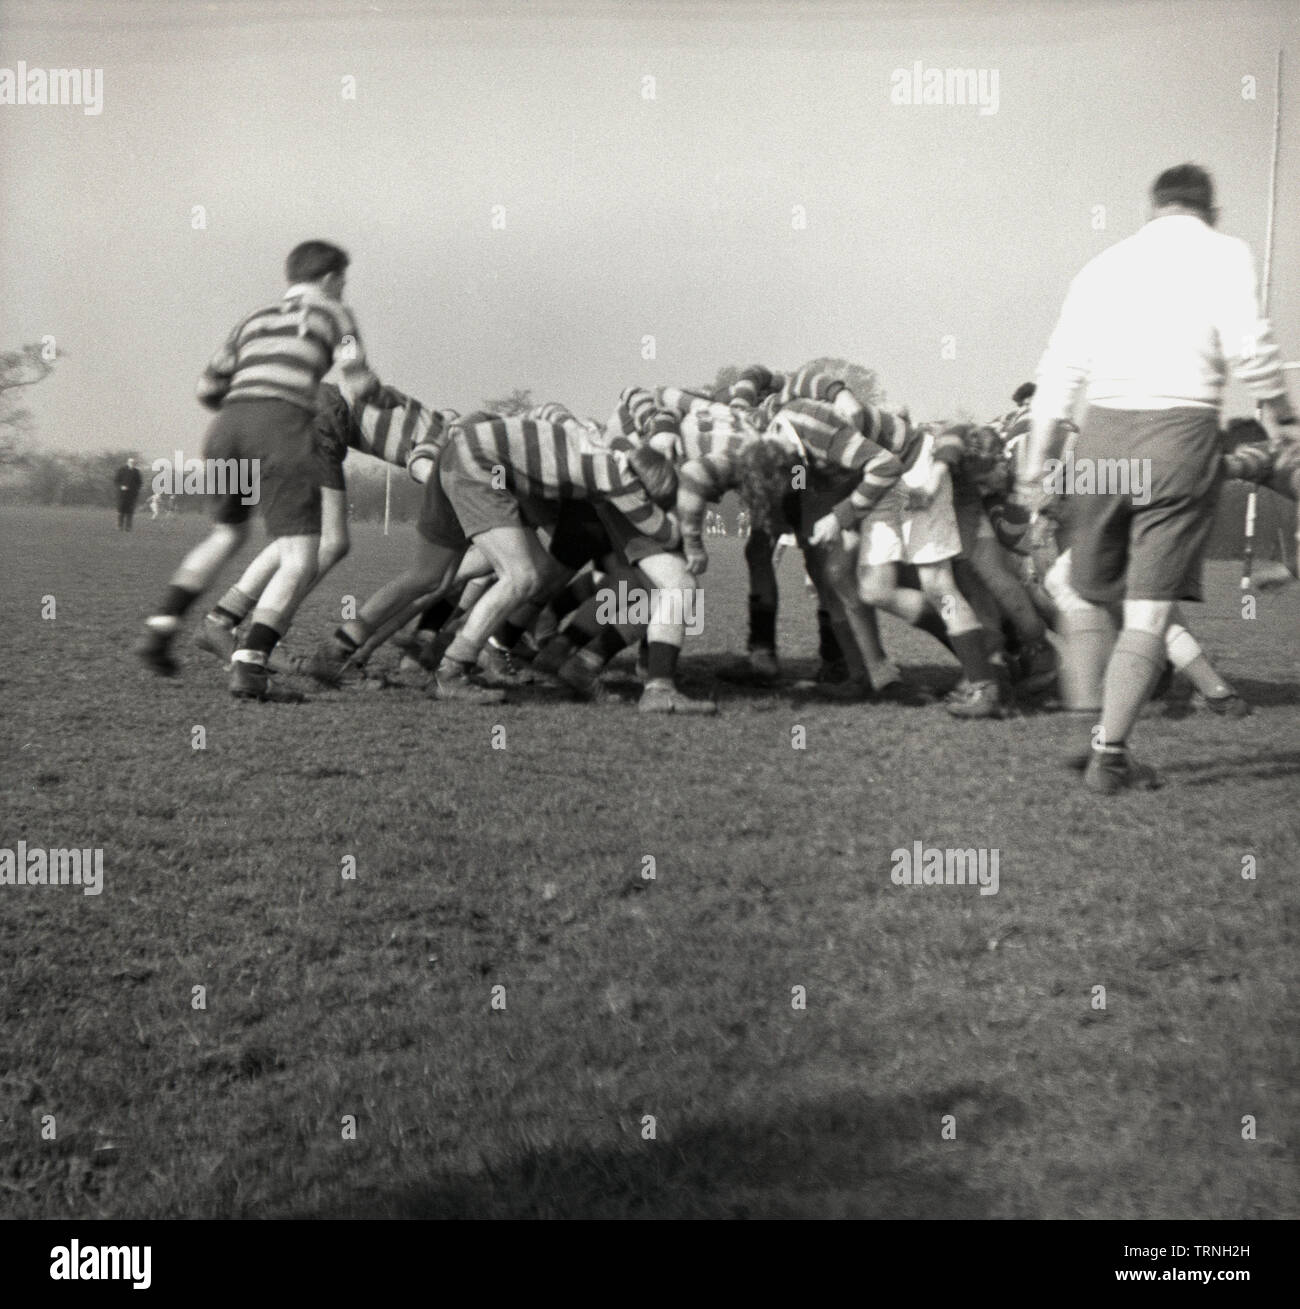 1950s, historical, amateur rugby union match, rugby forwards inter-locked with the oppostion forwards in a scrum, watched over by the referee, England, UK. - Stock Image